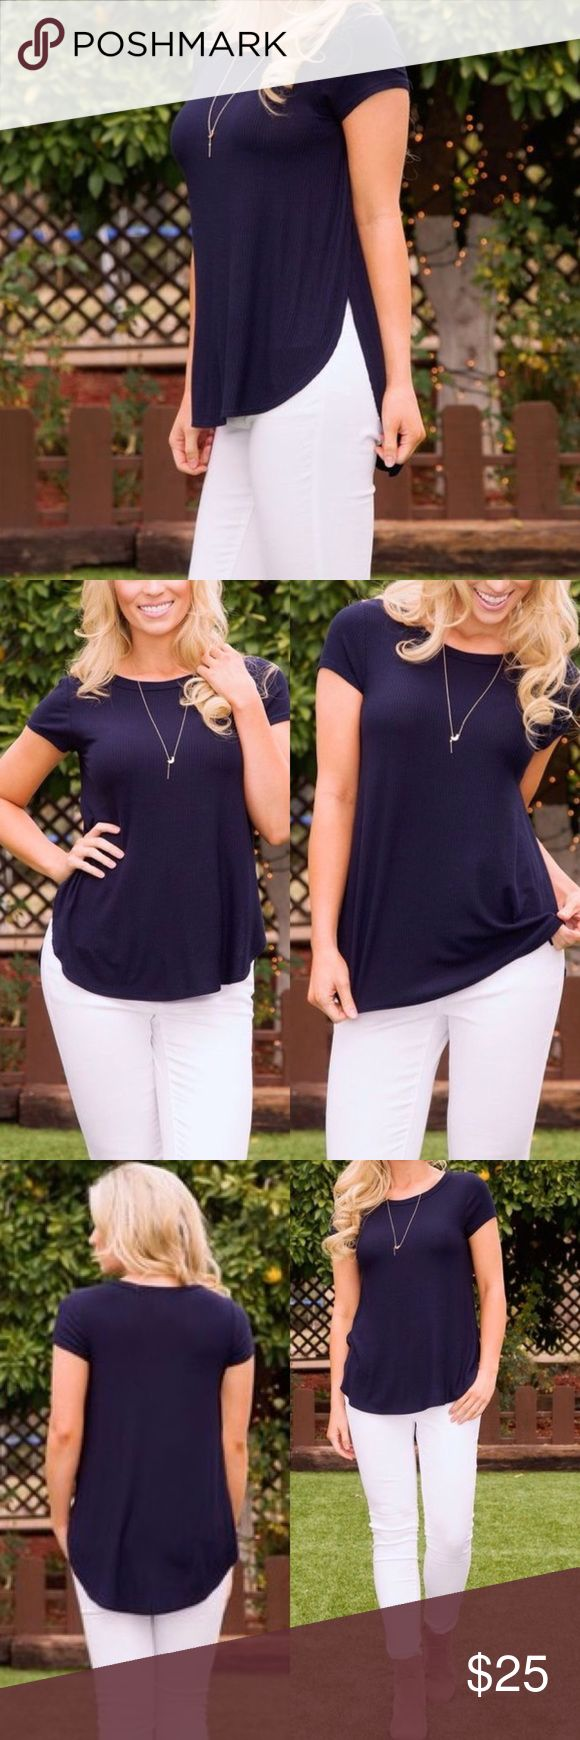 """Navy Ribbed Slit Top ✅ Boutique item prices firm unless bundled  ✅20% off bundles 3+ ✅Color may vary due to different device color calibrations ❌ No trades ❌ No transactions off Poshmark ❌ No offers on bundles  💗 Soft stretchy Ribbed fabric 💗 Scoop neck, short sleeves 💗 High side slits 💗 Hi-lo curved finished hem  💗 Rayon/Spandex Bust: 34"""" Side slit: 9"""" Front Length: 26"""" Back Length: 29"""" Poetry Tops"""